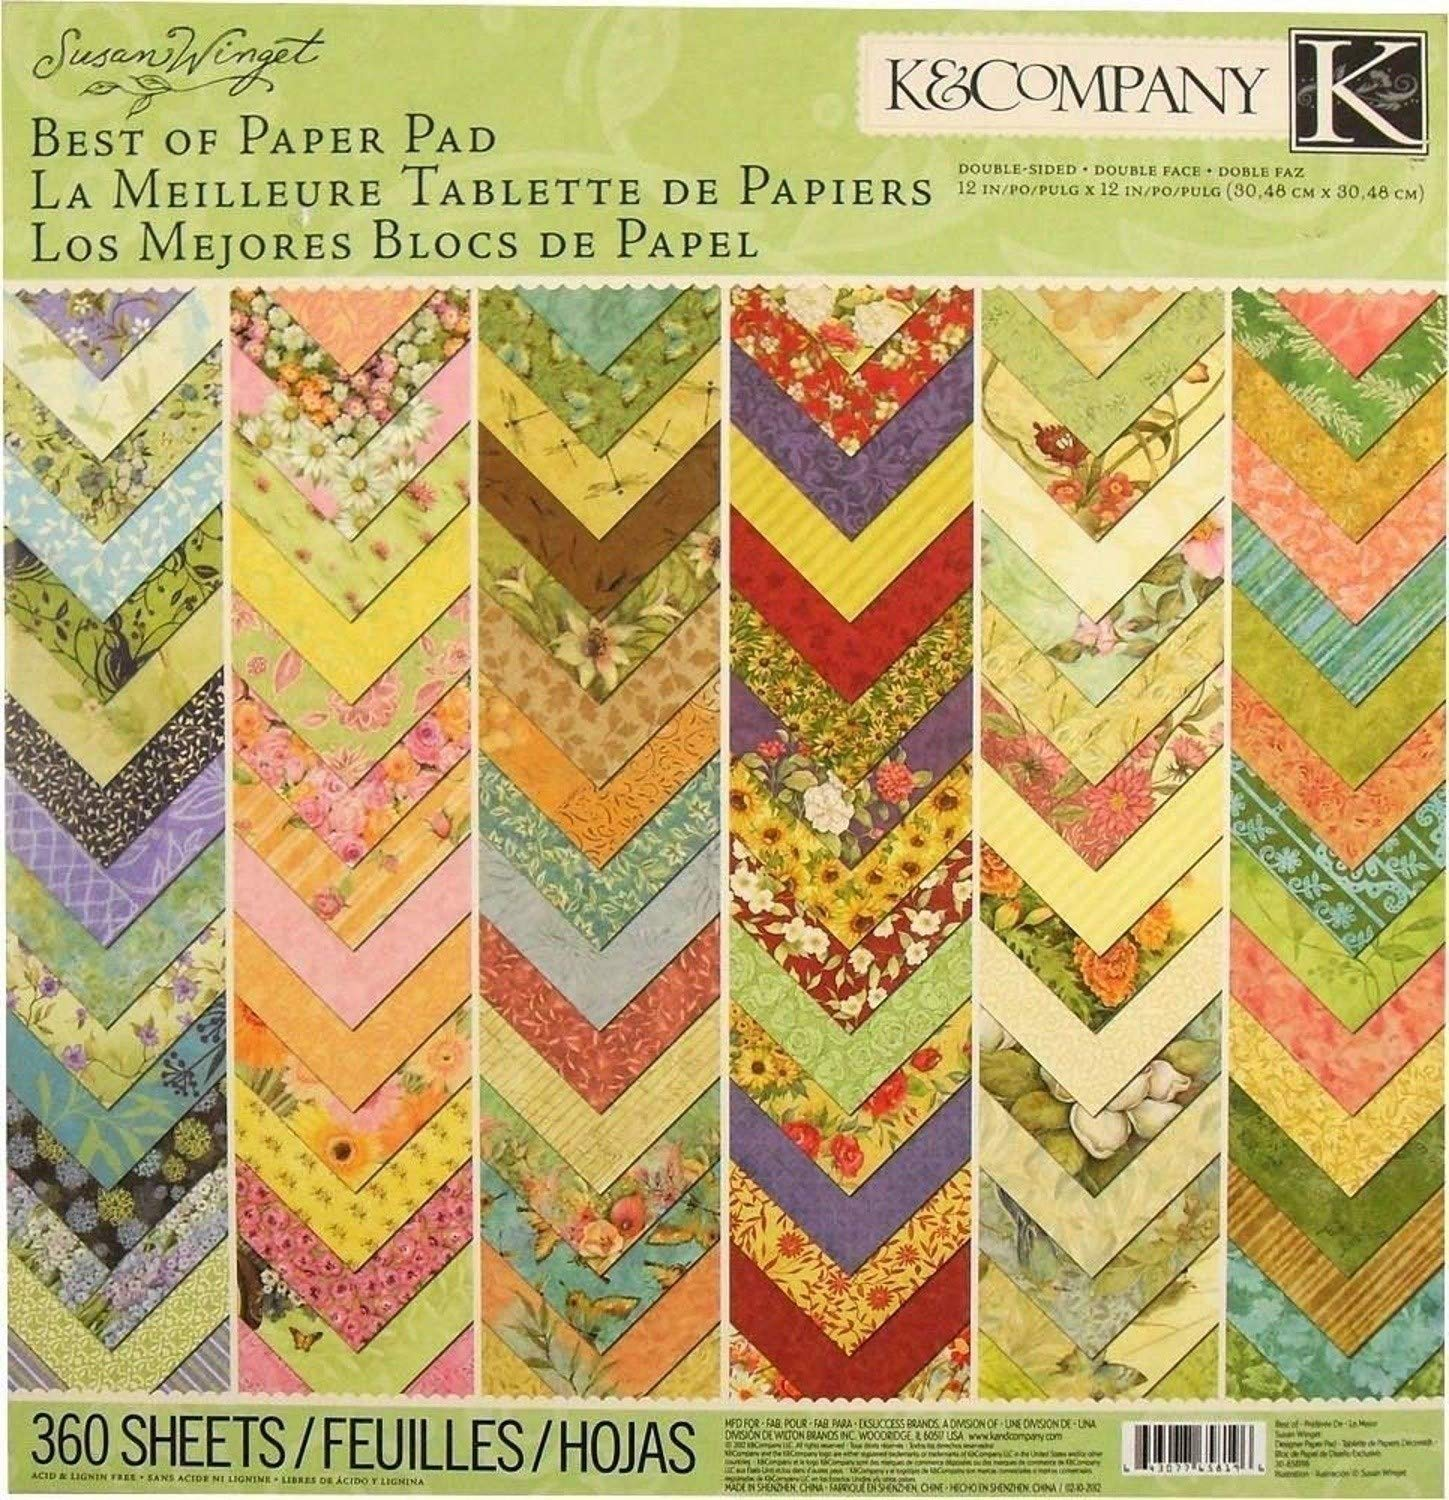 American Craft K&Company Best of Susan Winget 12x12 inches Specialty Paper Pad